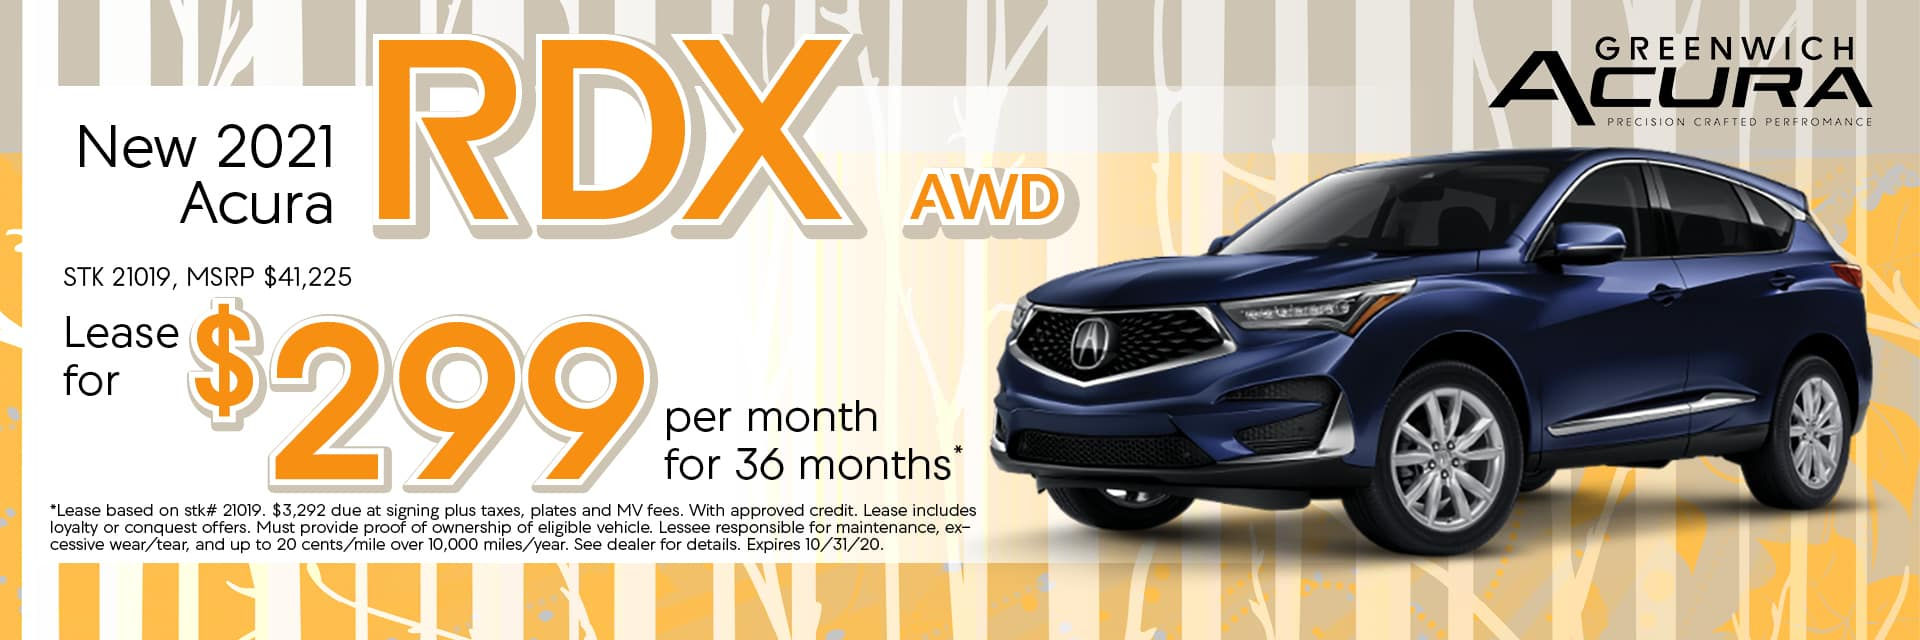 New 2020 Acura RDX, Lease for $299/Mo. x 36 Mos. | Greenwich, CT